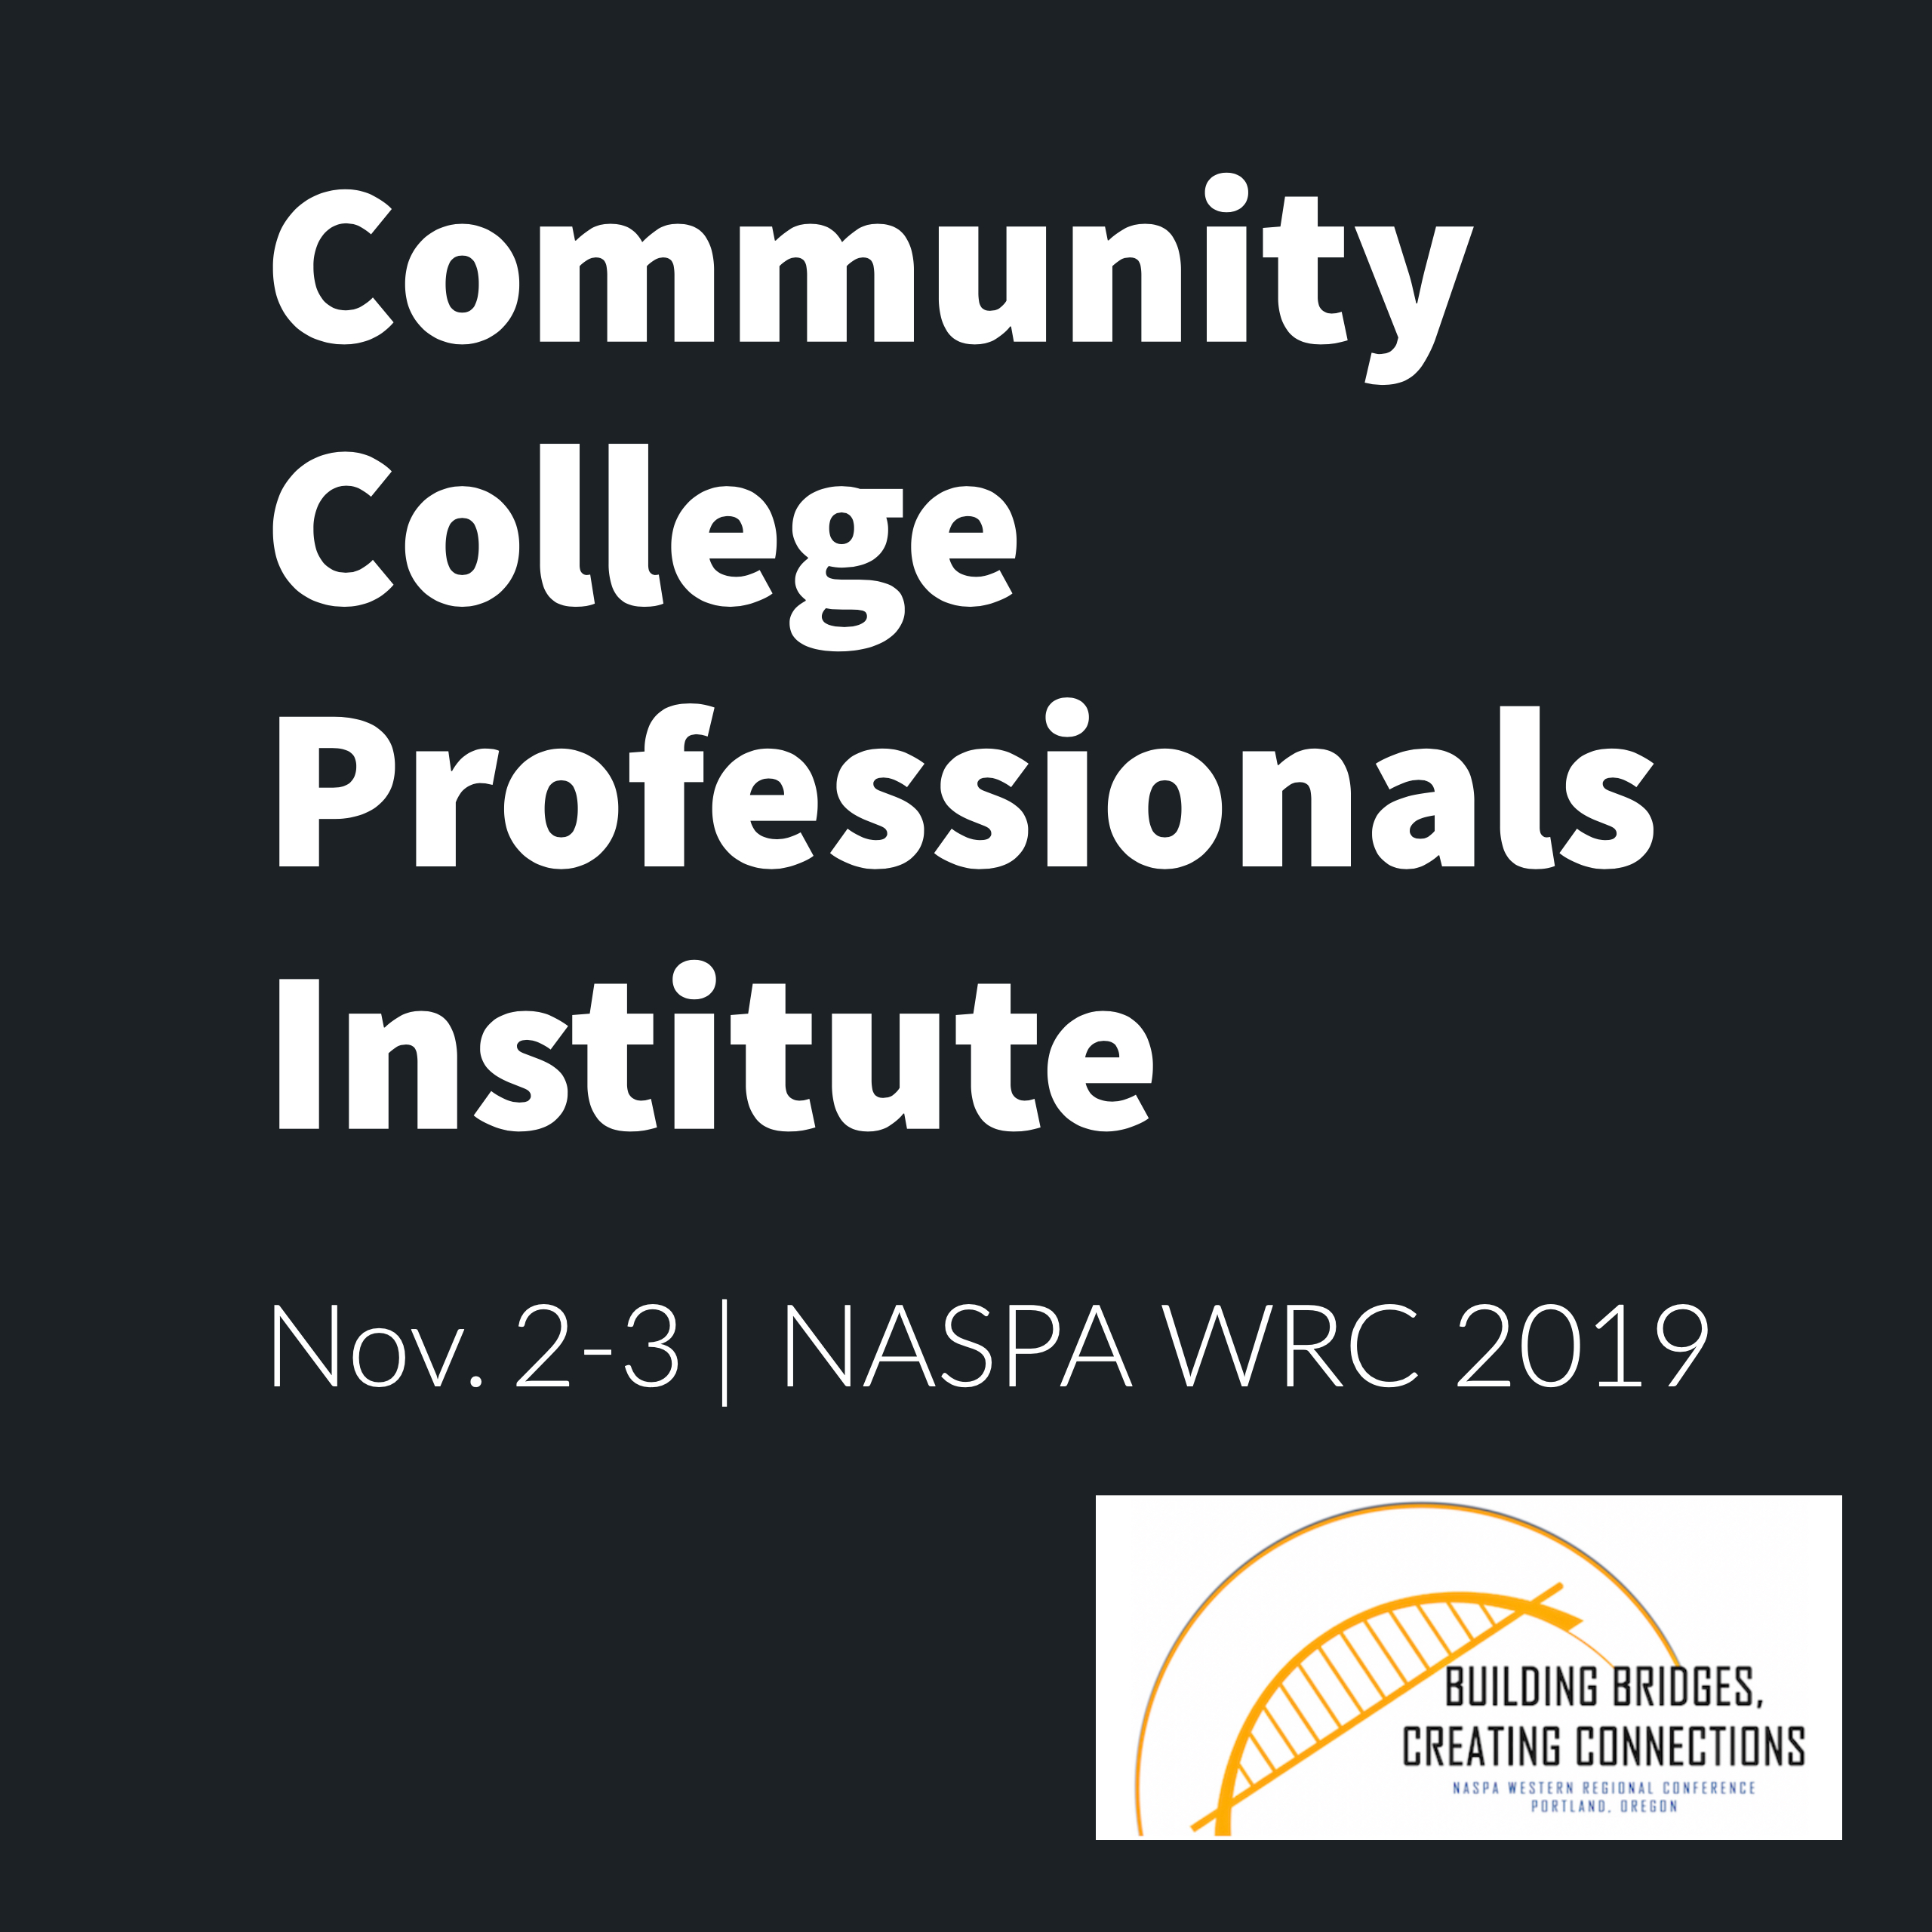 Community College Professionals Institute